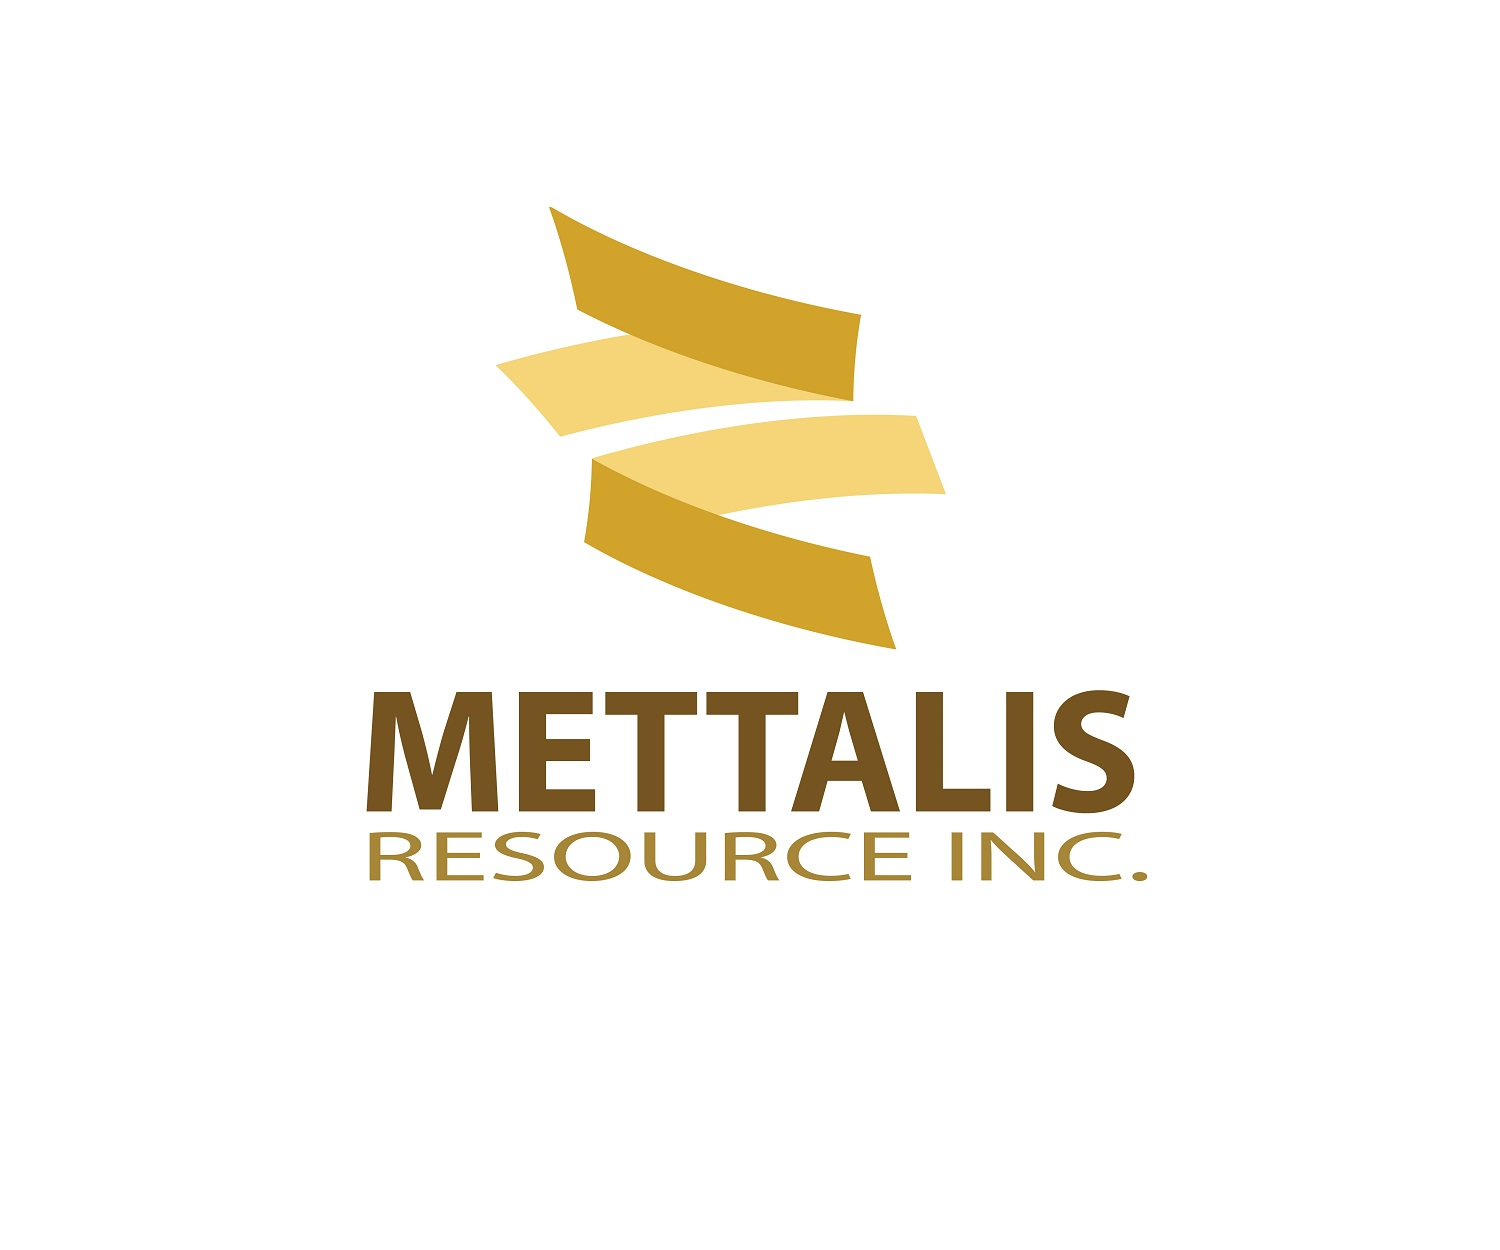 Logo Design by jhunzkie24 - Entry No. 149 in the Logo Design Contest Metallis Resources Inc Logo Design.